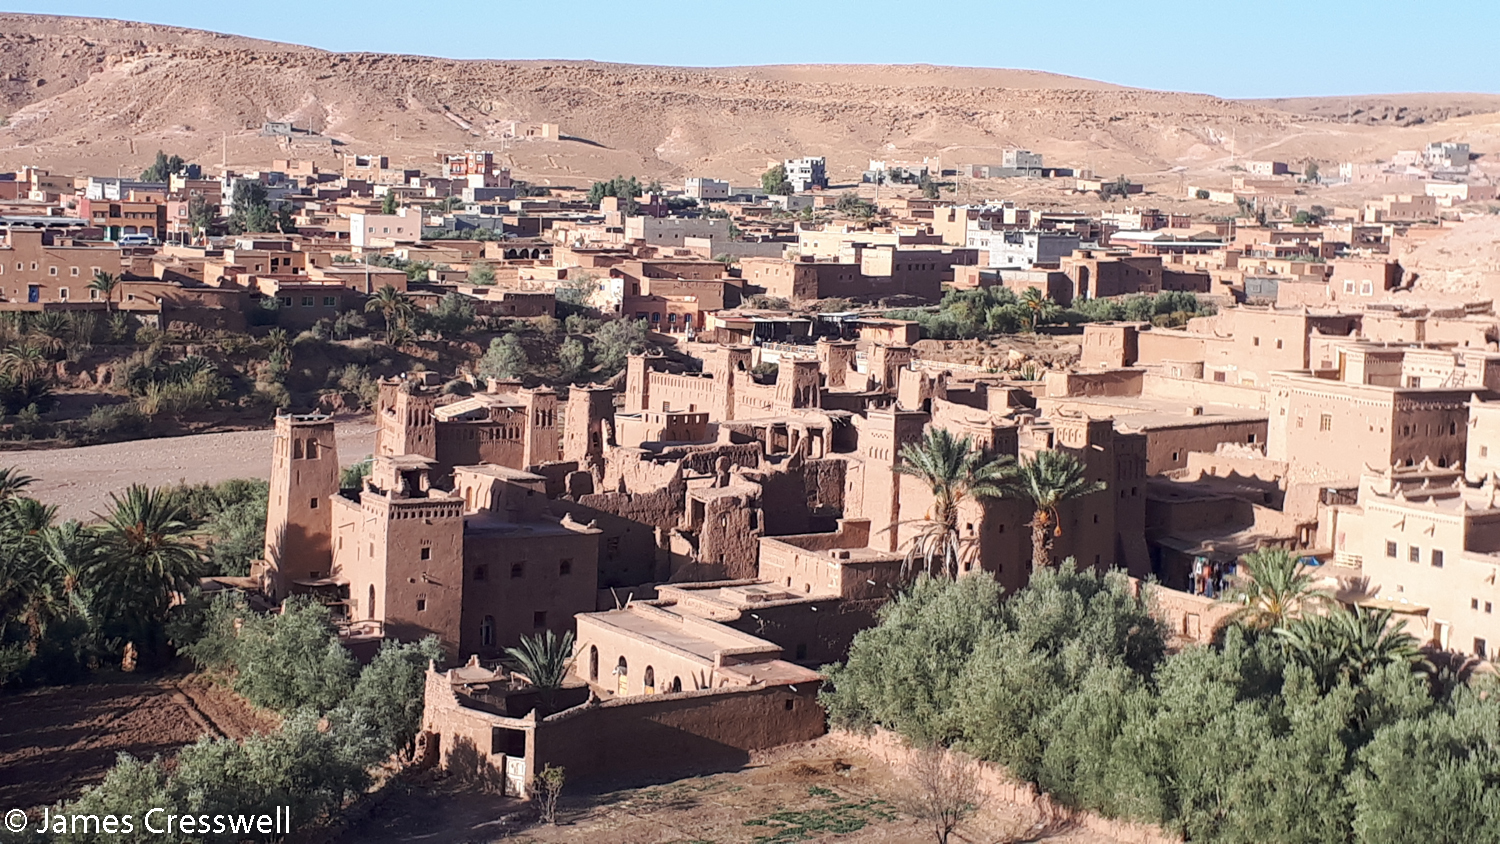 View of the World Heritage Site of Ait Ben Haddou